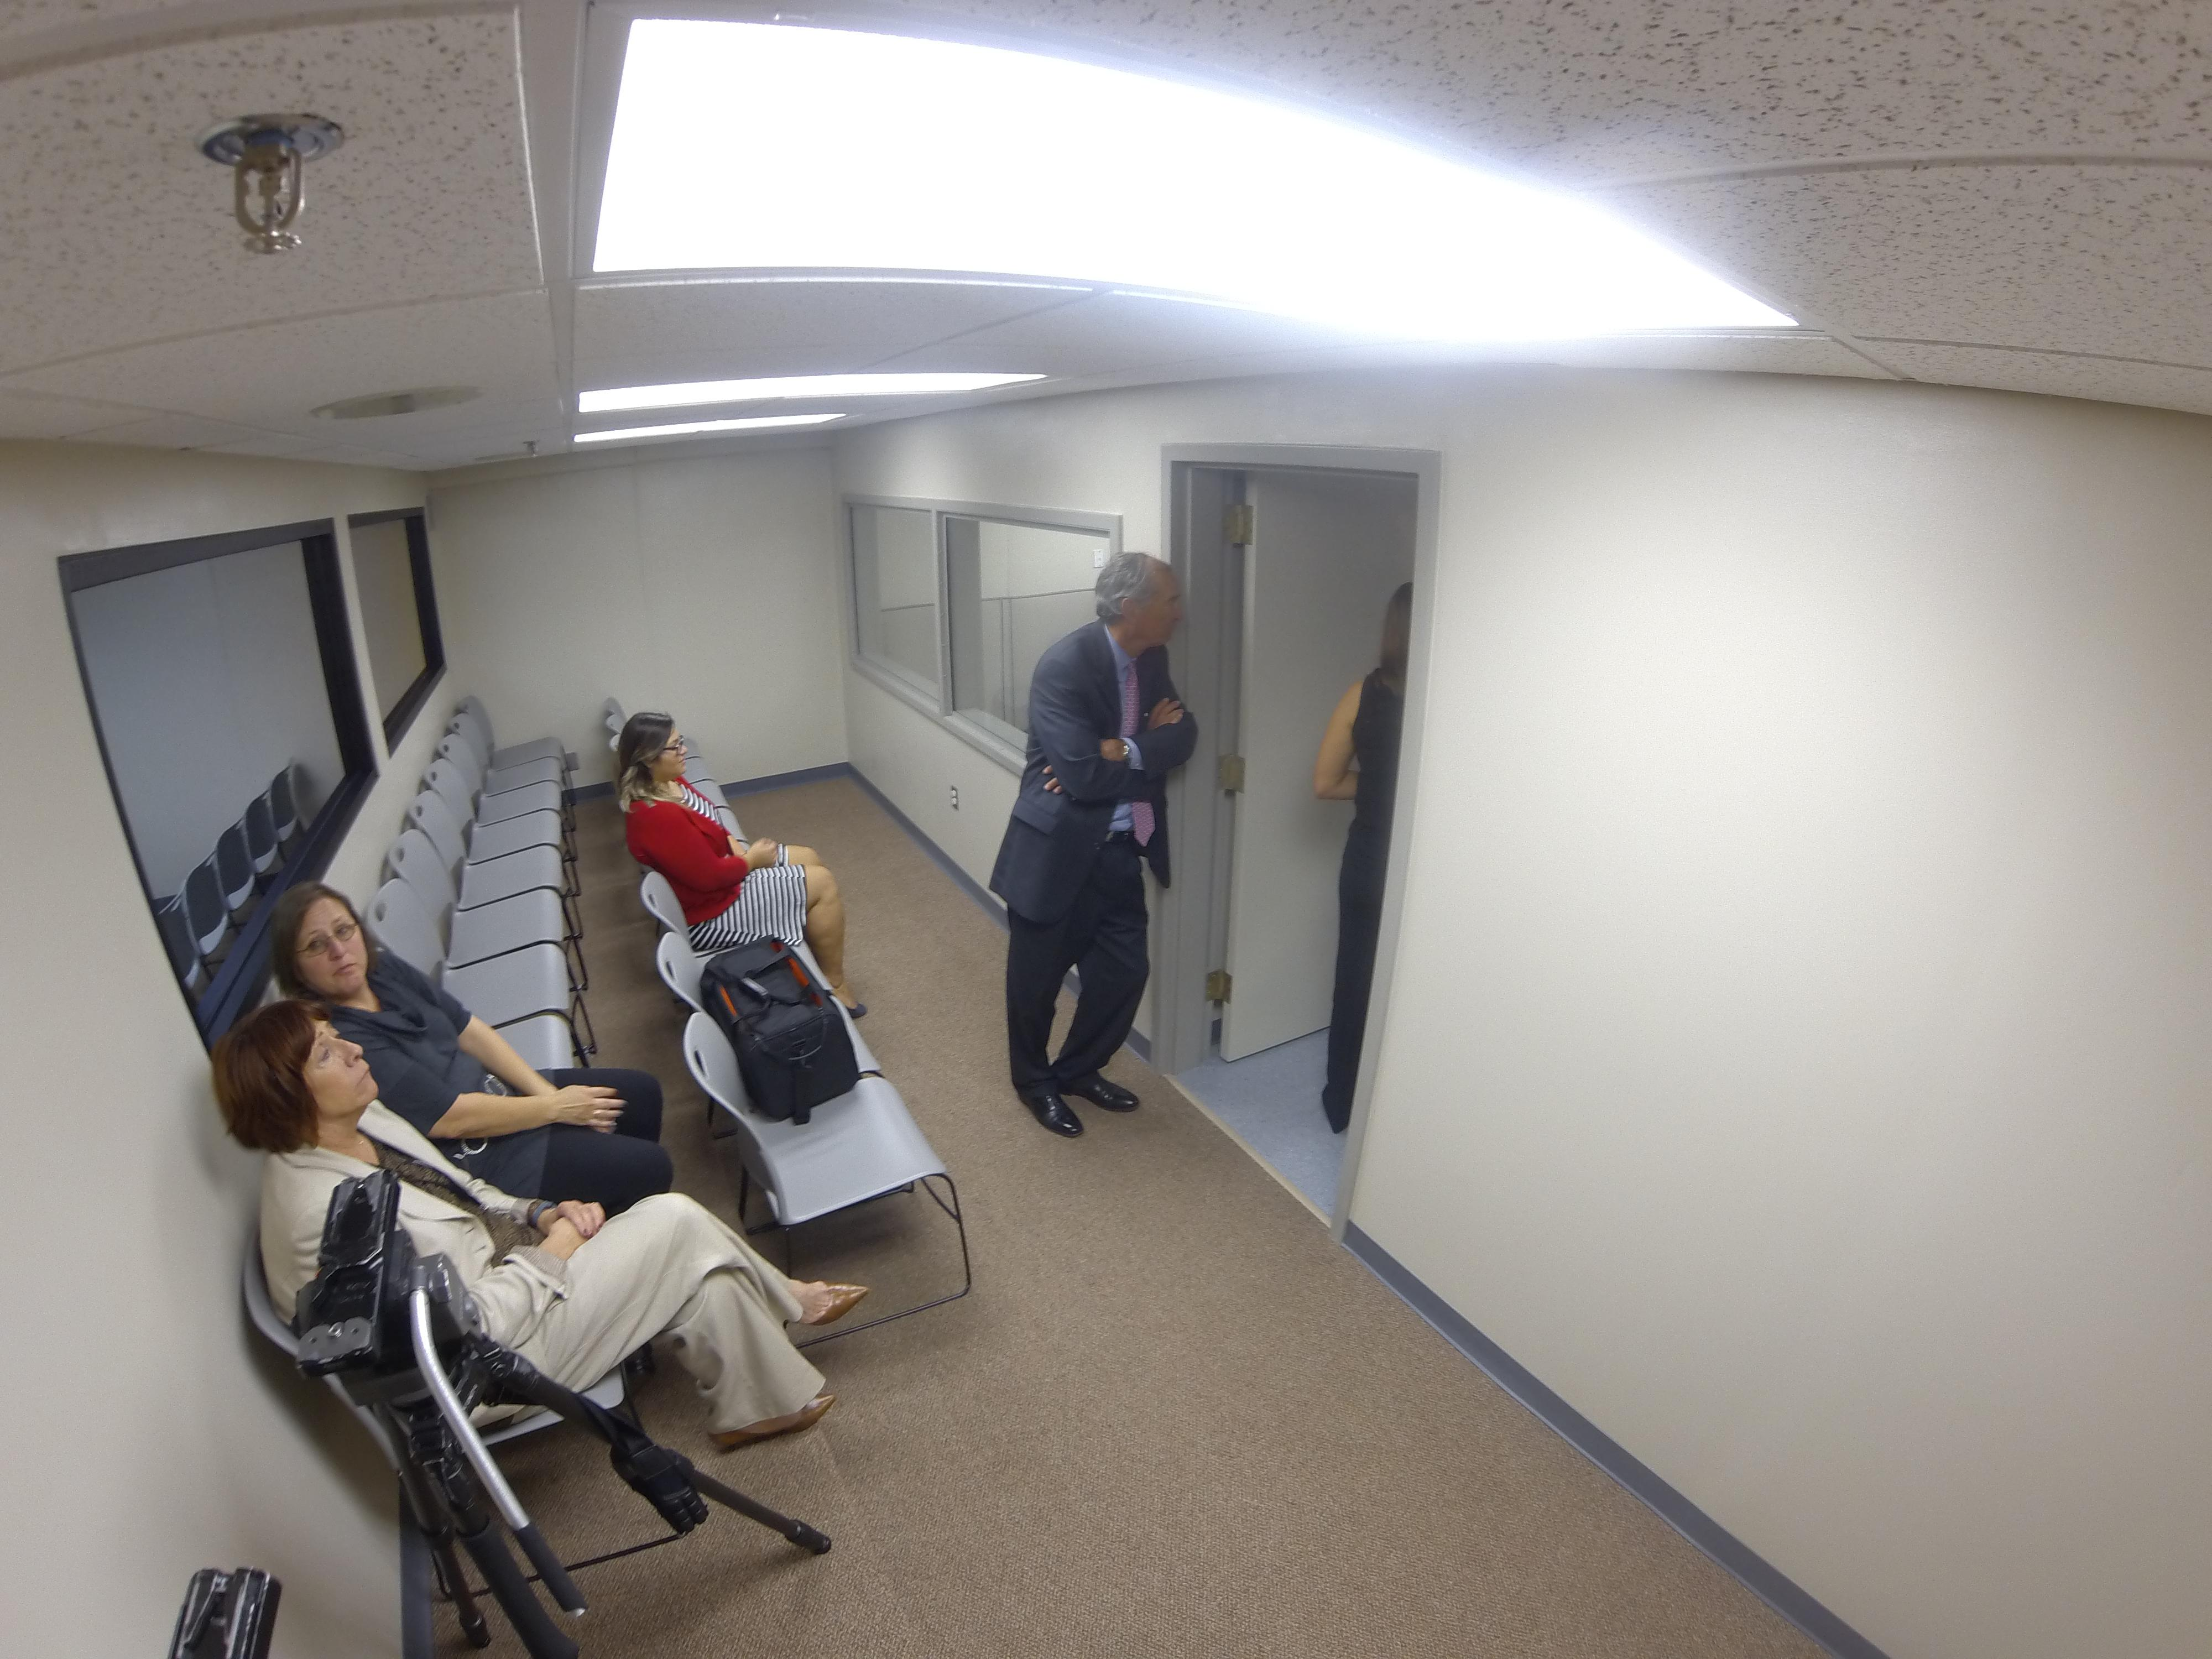 The viewing area of Oklahoma's death chamber from just inside the door. The room is smaller and now seats 7 fewer people after the remodel. (Keaton Fox/KOKH)